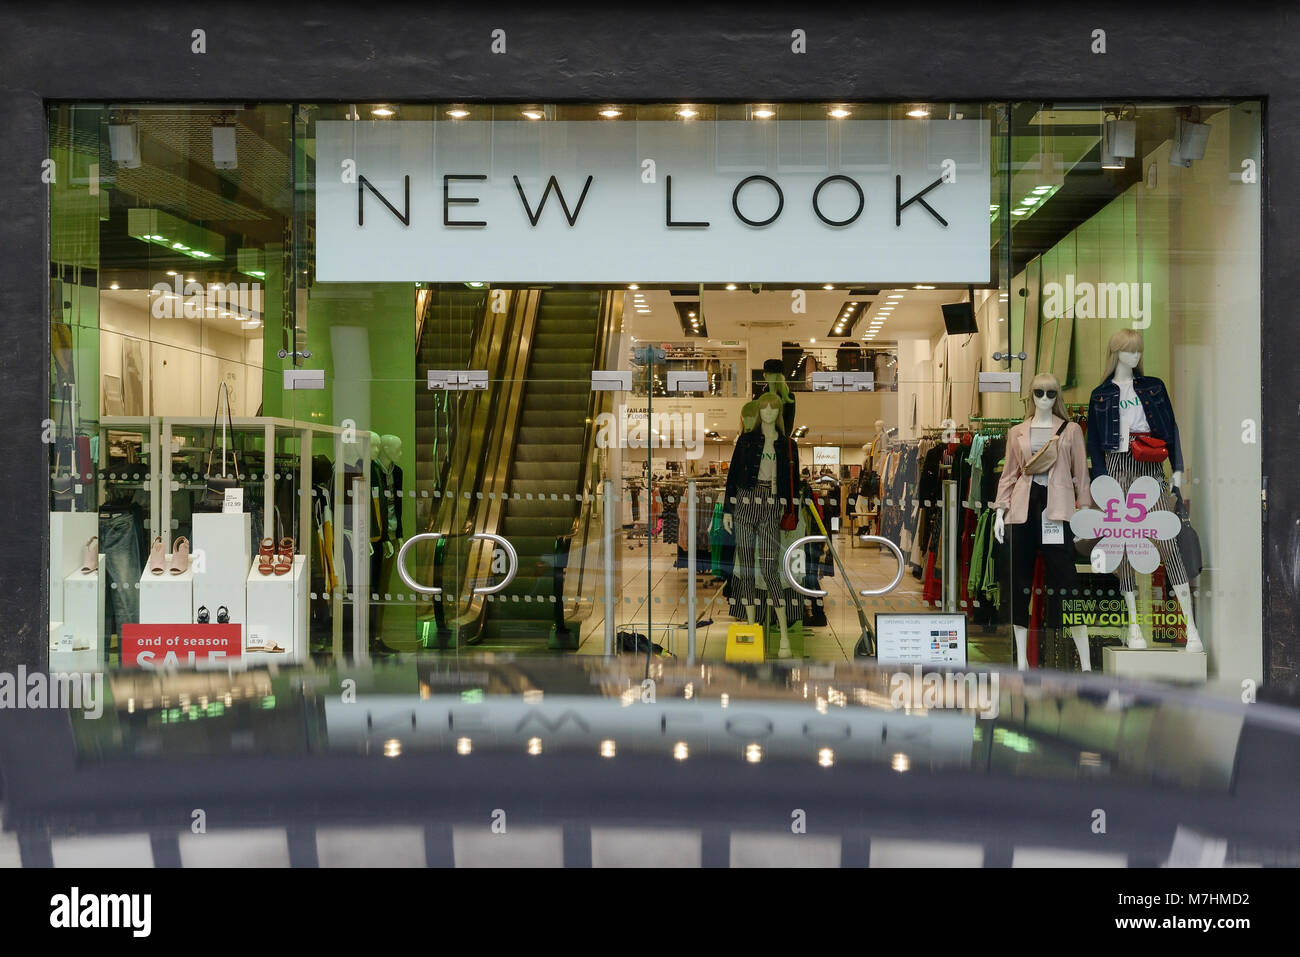 New Look shop front in Chester city centre UK - Stock Image